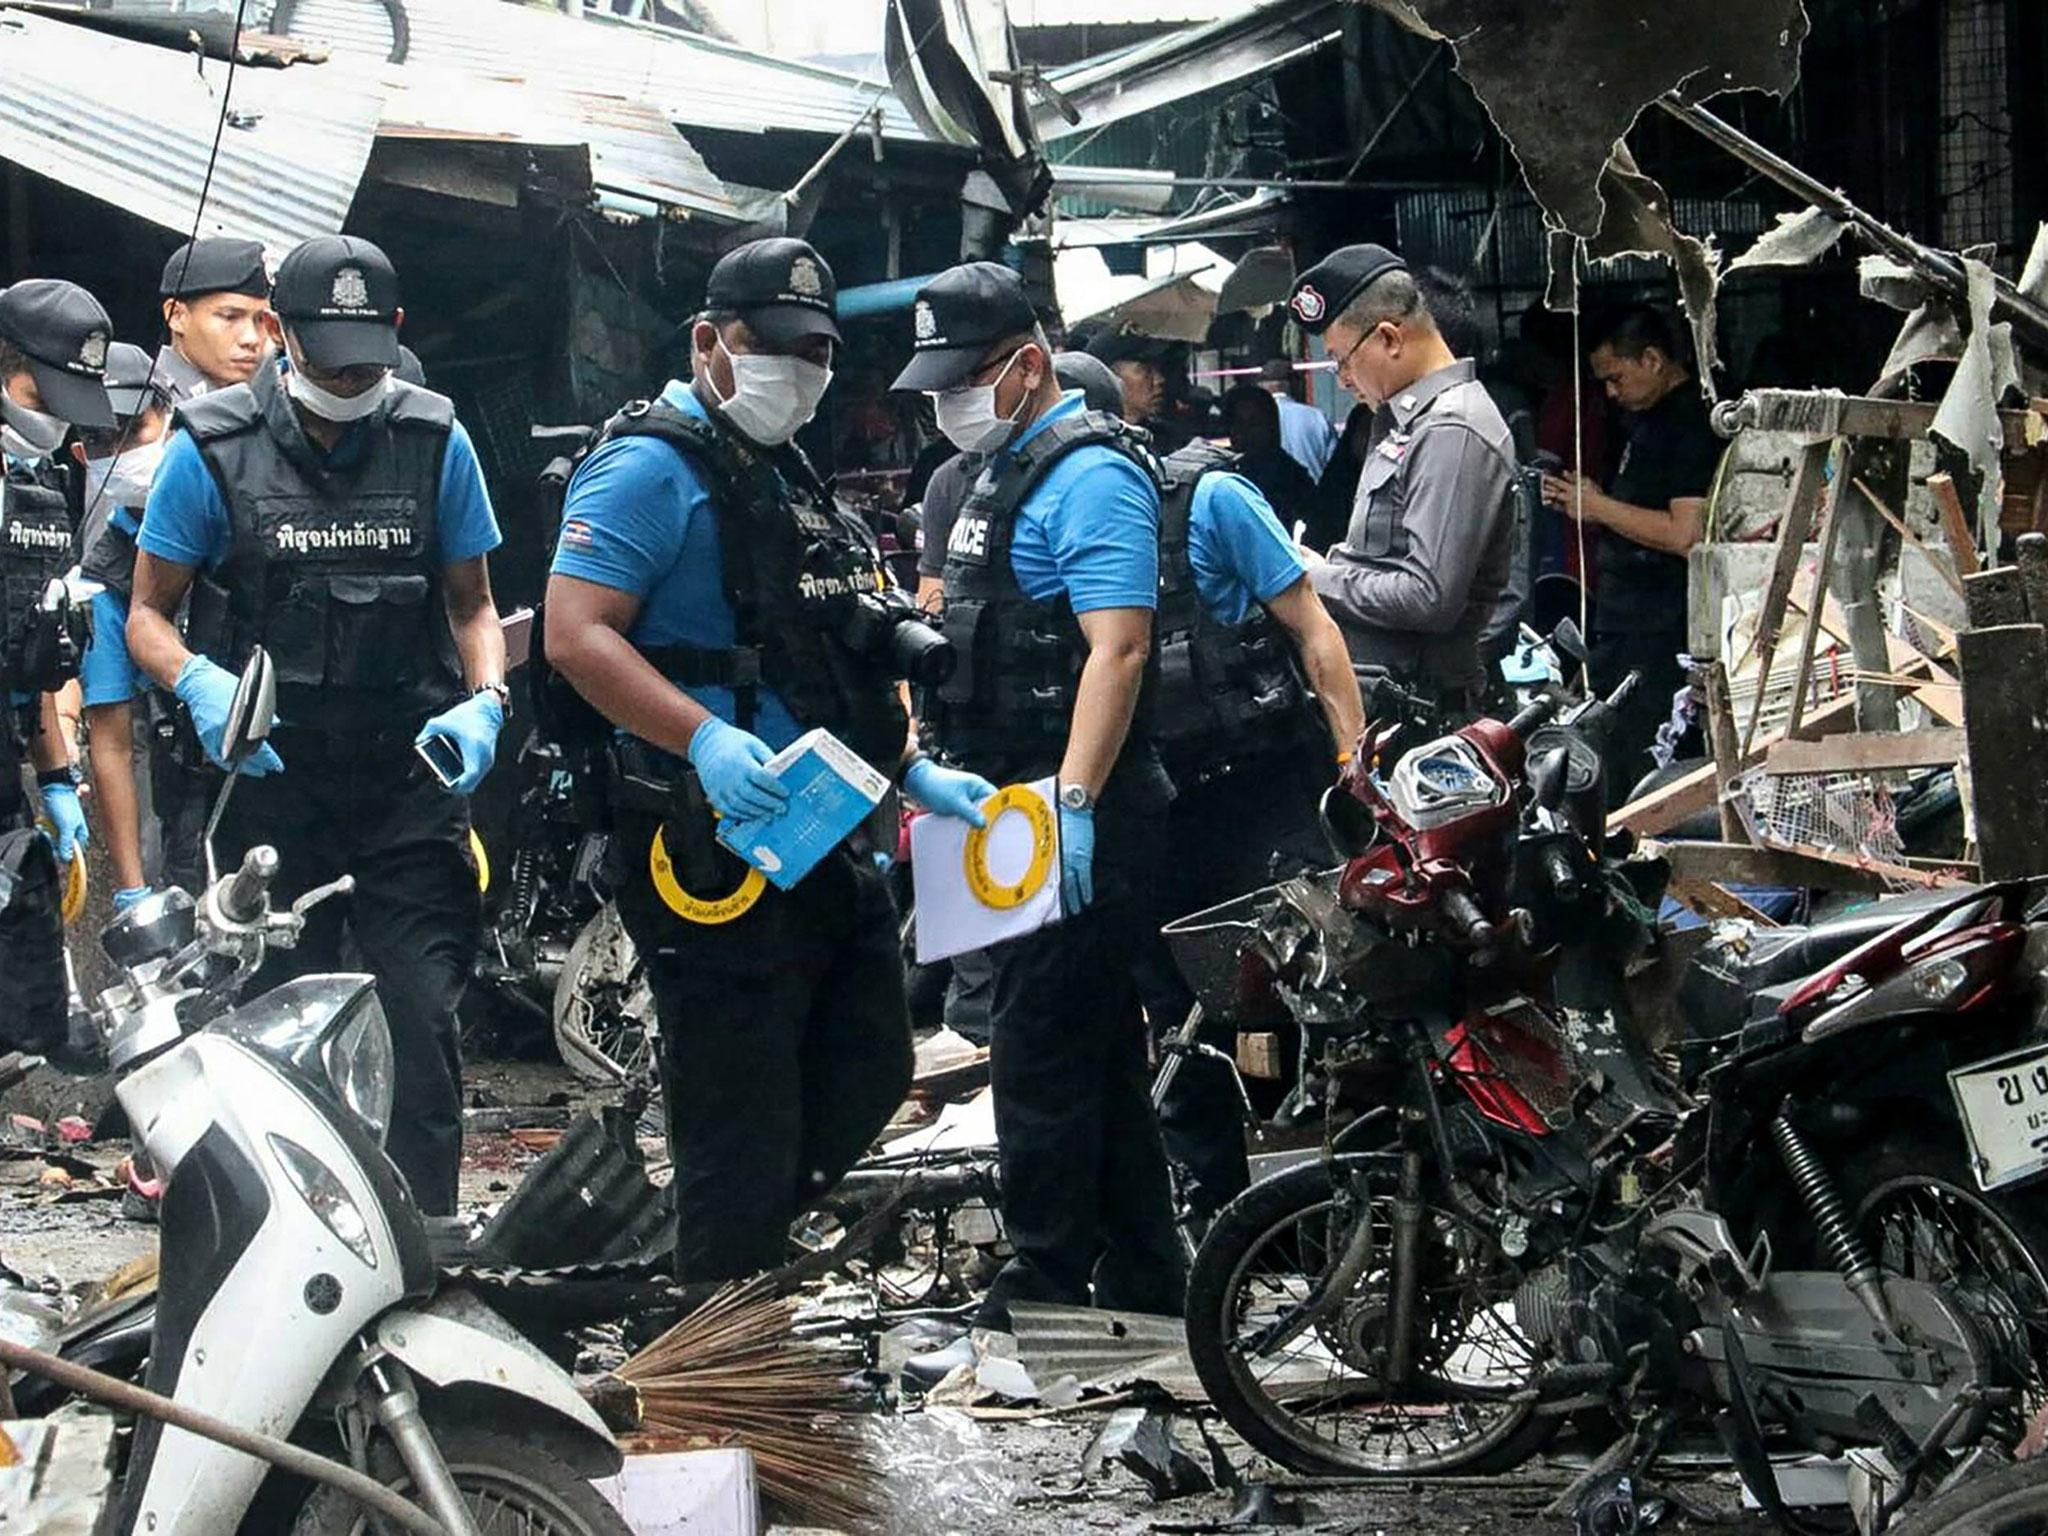 Thailand: Foreign office warns tourists of high terror threat amid ongoing insurgency